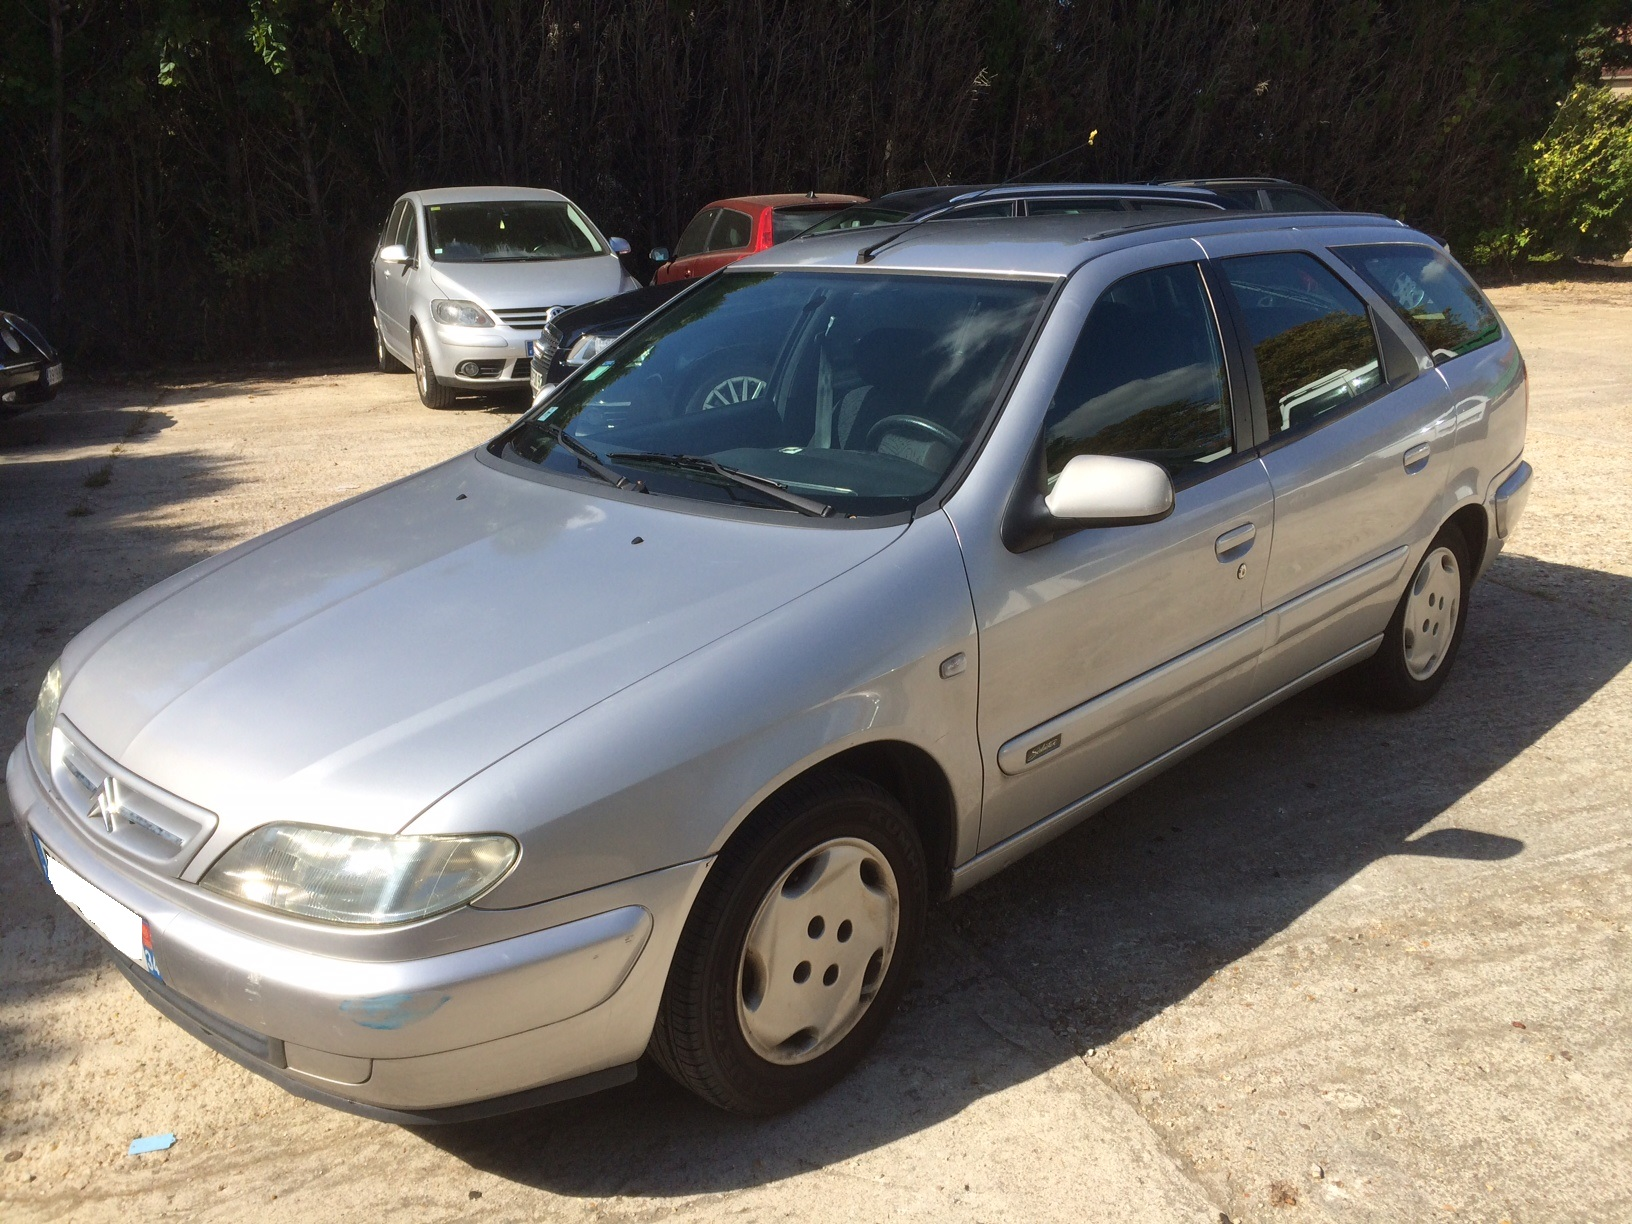 CITROEN XSARA 1.8 FRENCH REGISTERED